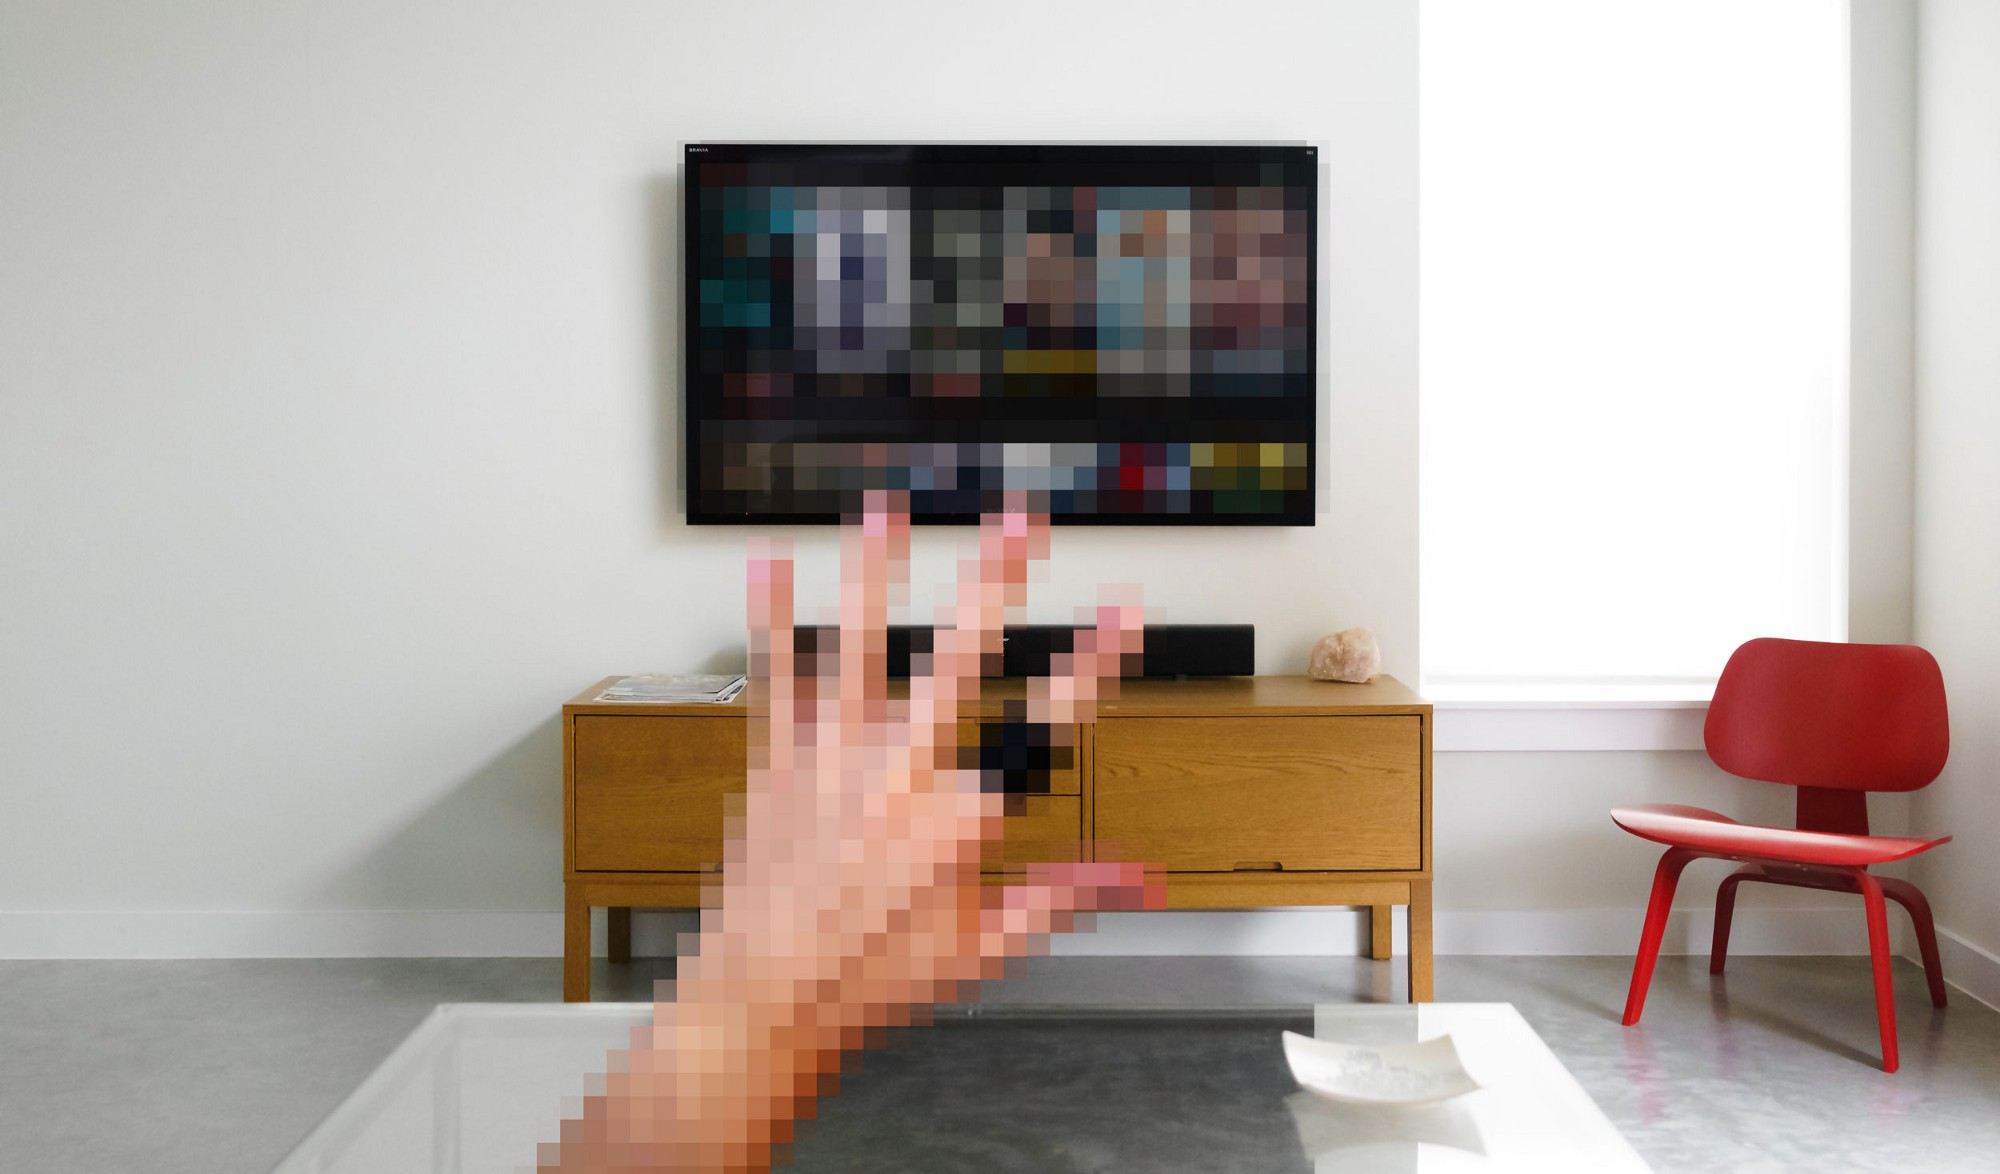 Livingroom with a blurred hand in the foreground and TV in the background.